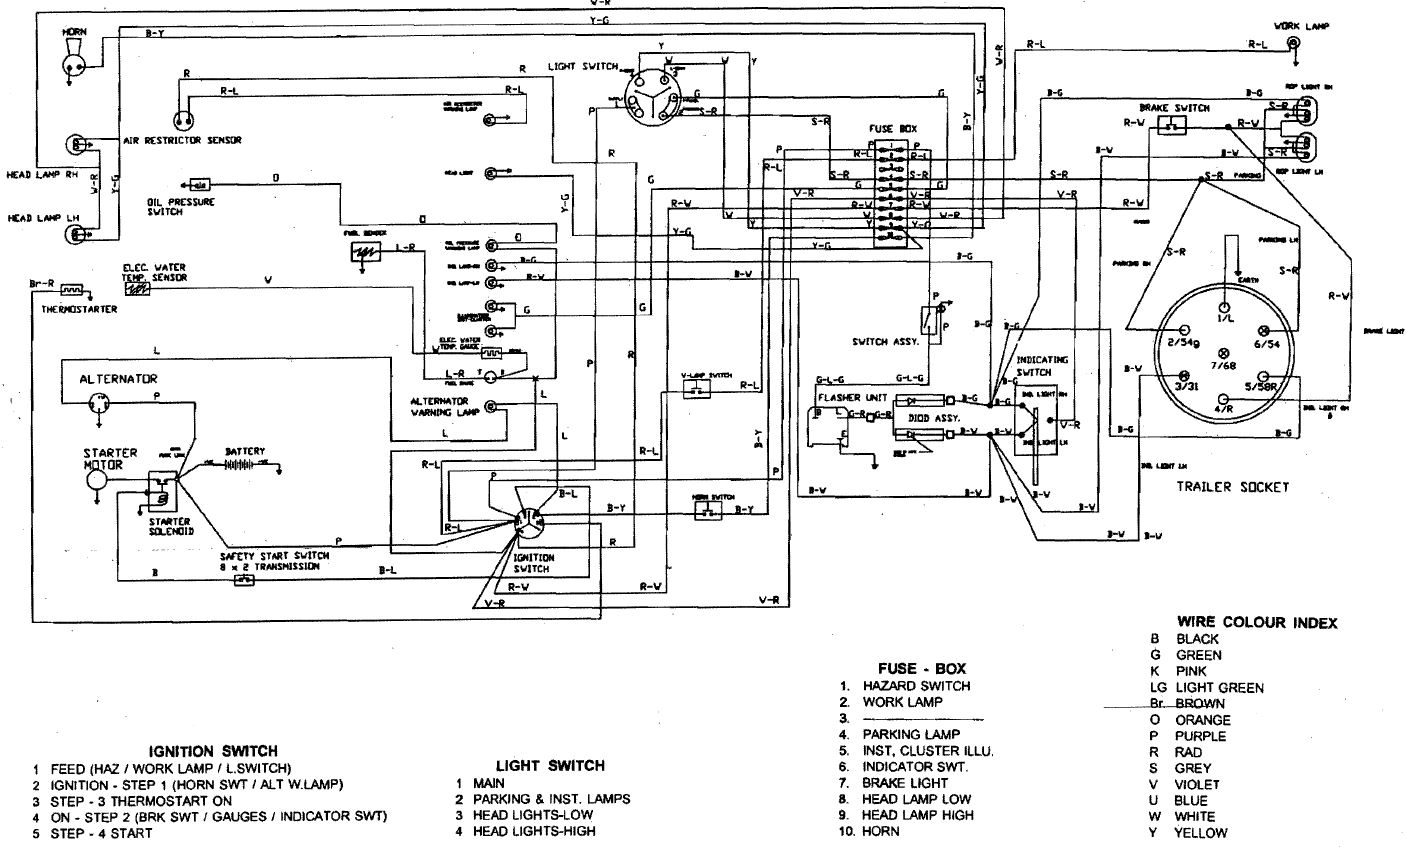 ignition switch wiring diagram Long Tractor Company